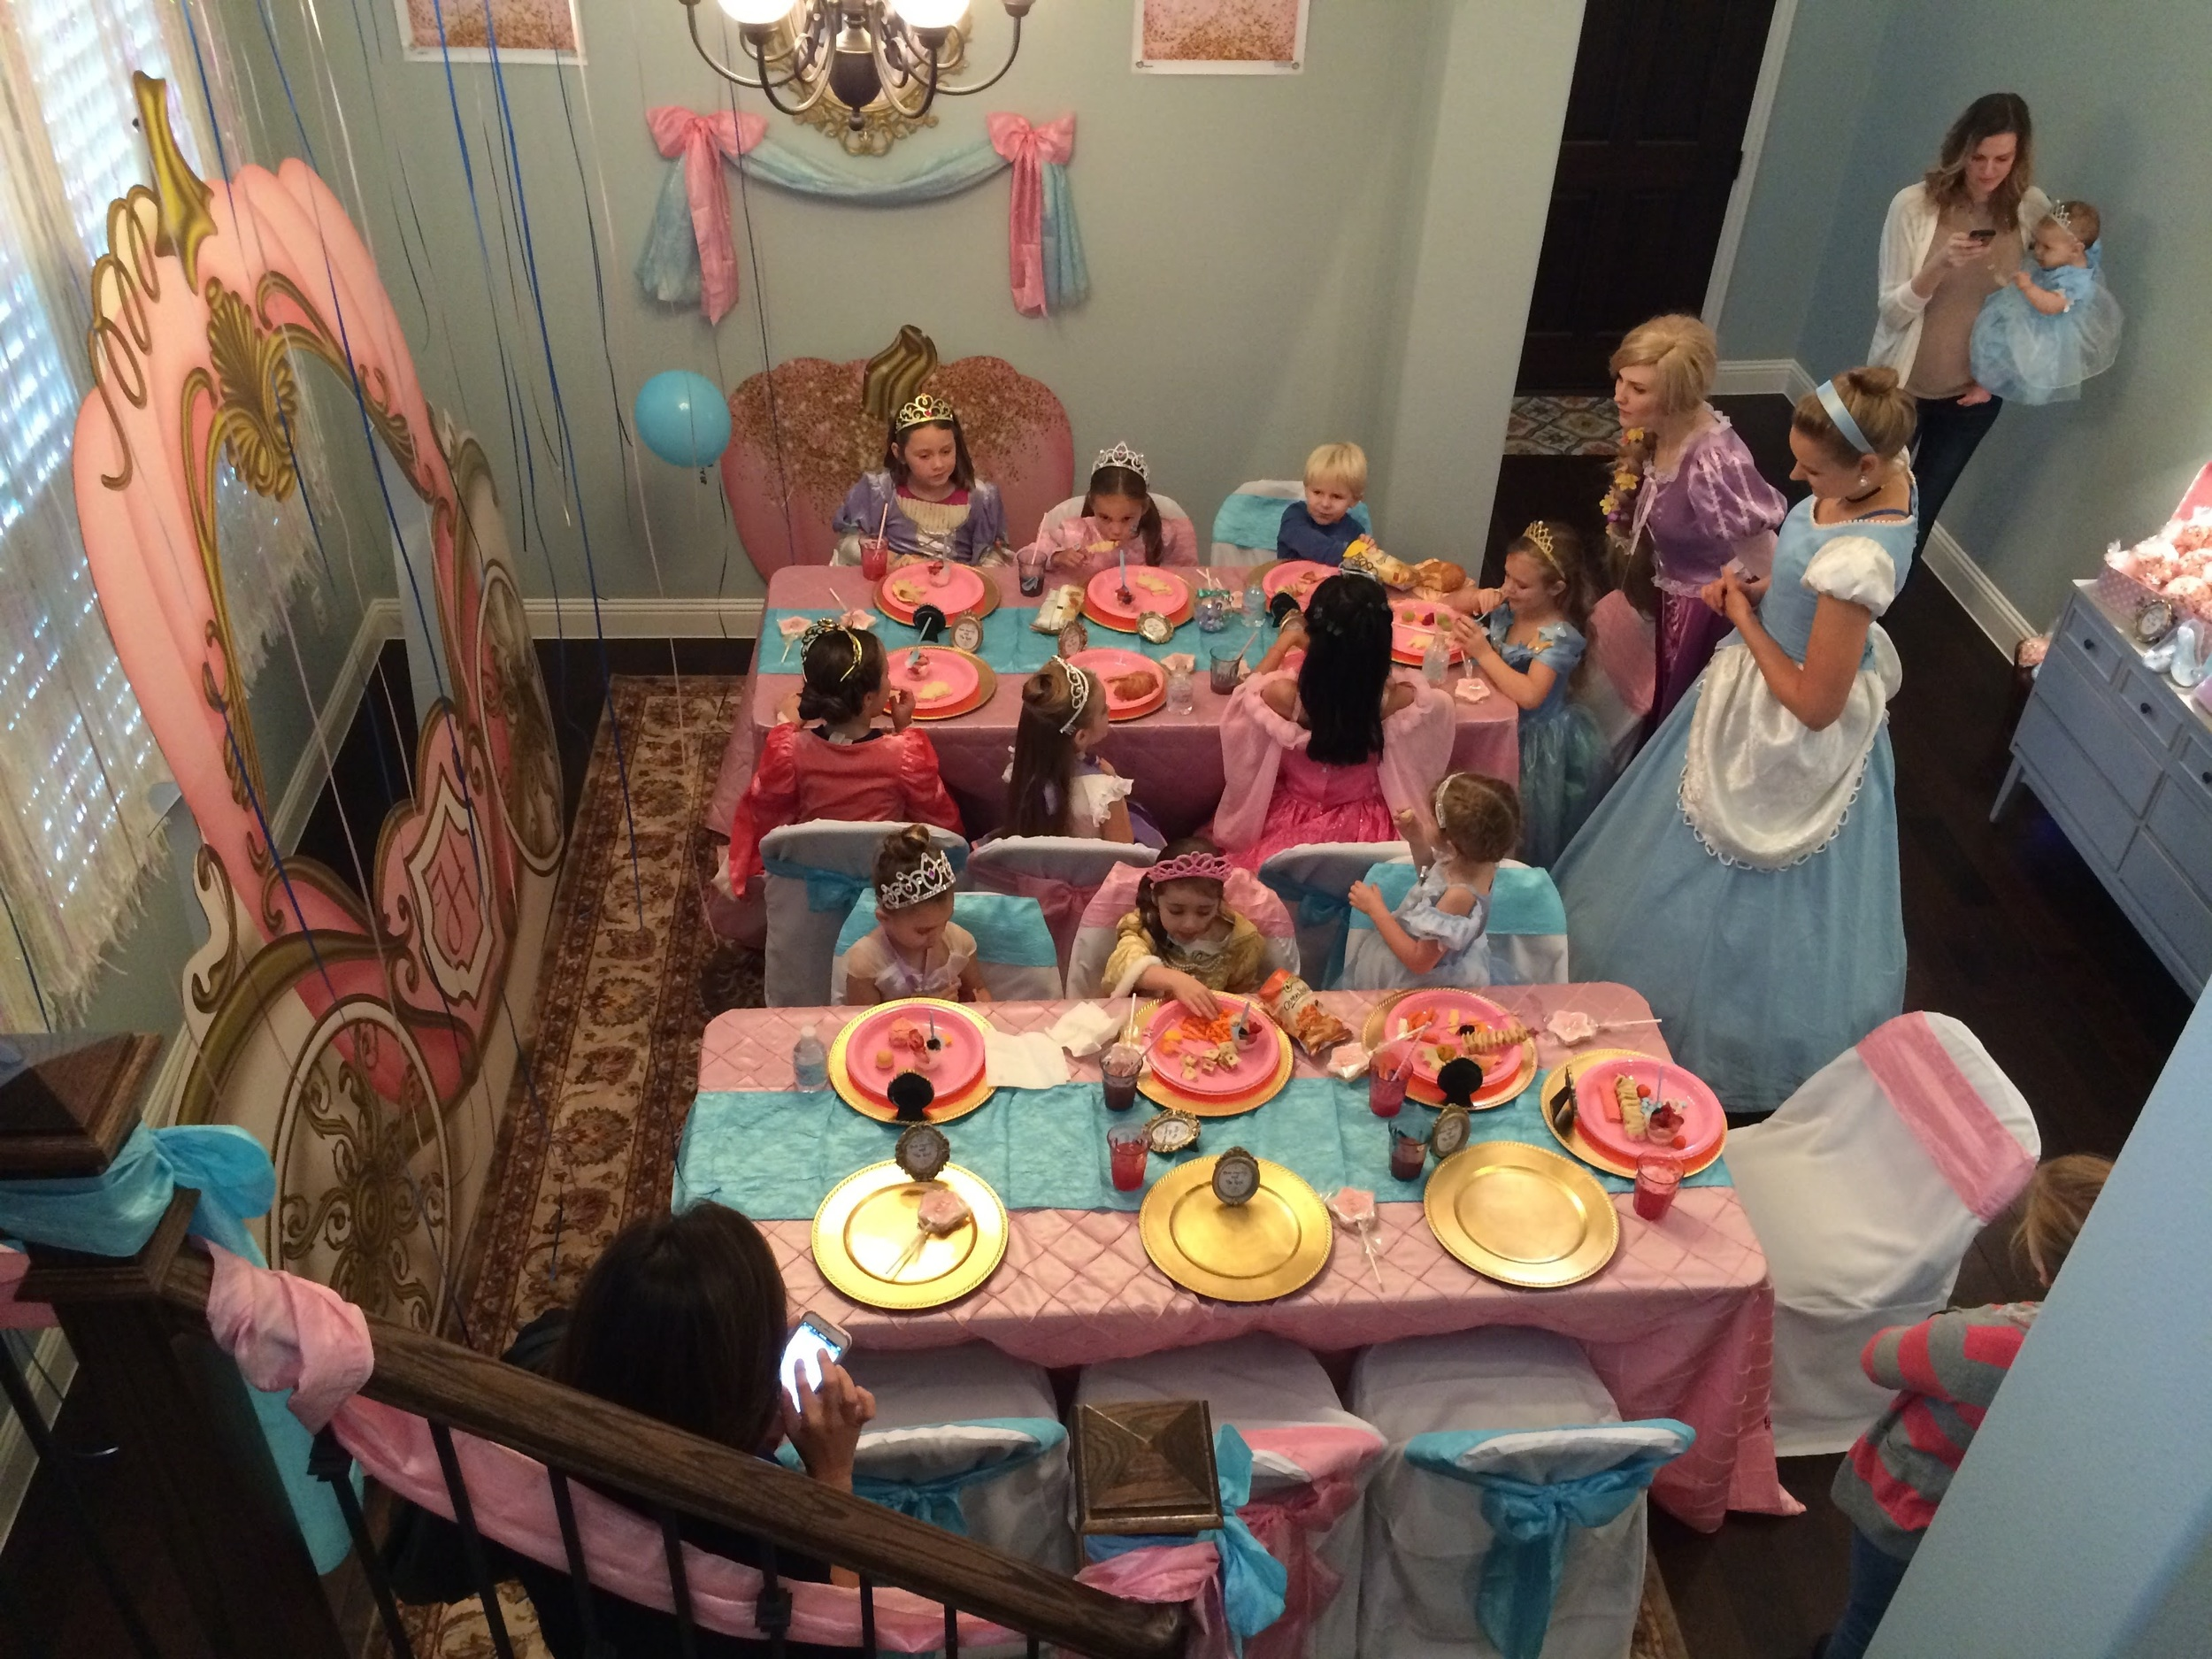 The girls were just starting to get seated for lunch while our Royal Visitors, Princesses Rapunzel and Cinderella entertained them with songs, stories and games.  If you're in the Dallas Fort Worth area, I booked these ladies through  Royally Fun Parties  and they were AMAZING!!!!  I cannot say enough good things.  They seriously jumped right in and helped with games, crafts, helped the girls get lunch and were like having two extra hostesses at the party.  Best of all they had beautiful voices and the girls were SO entertained!  It was seriously magical!